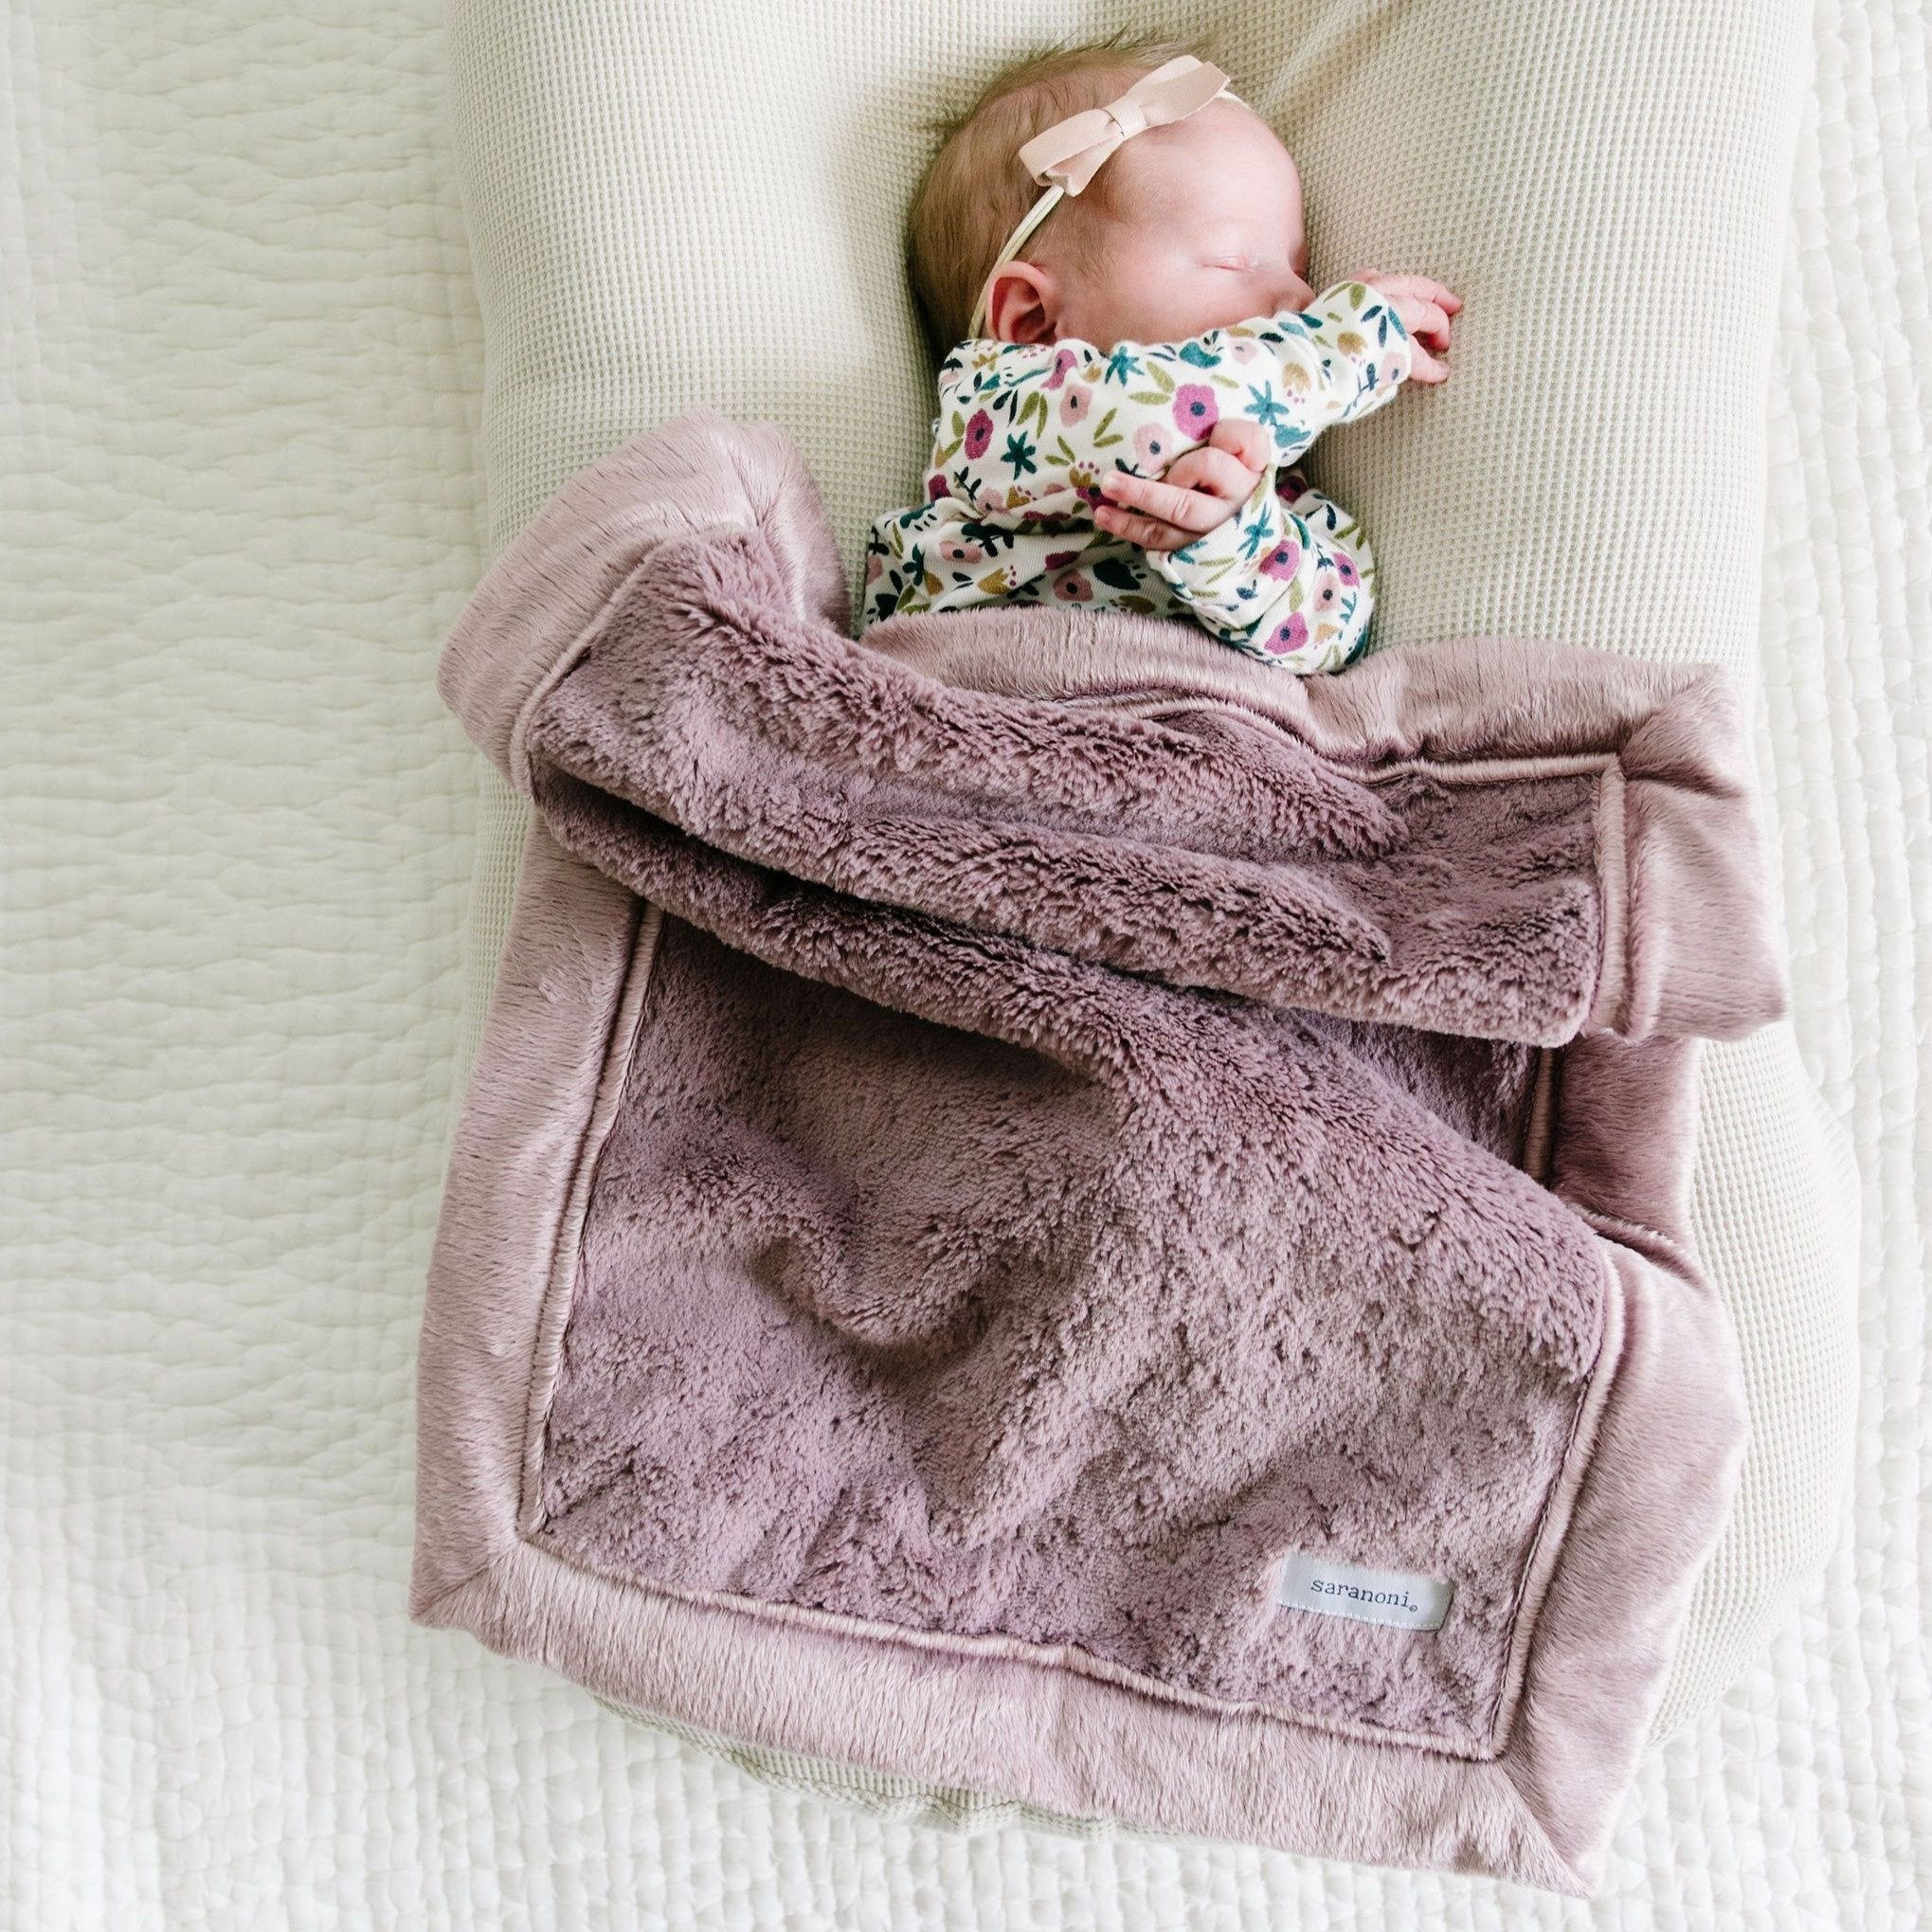 Bloom Lush Mini Blanket